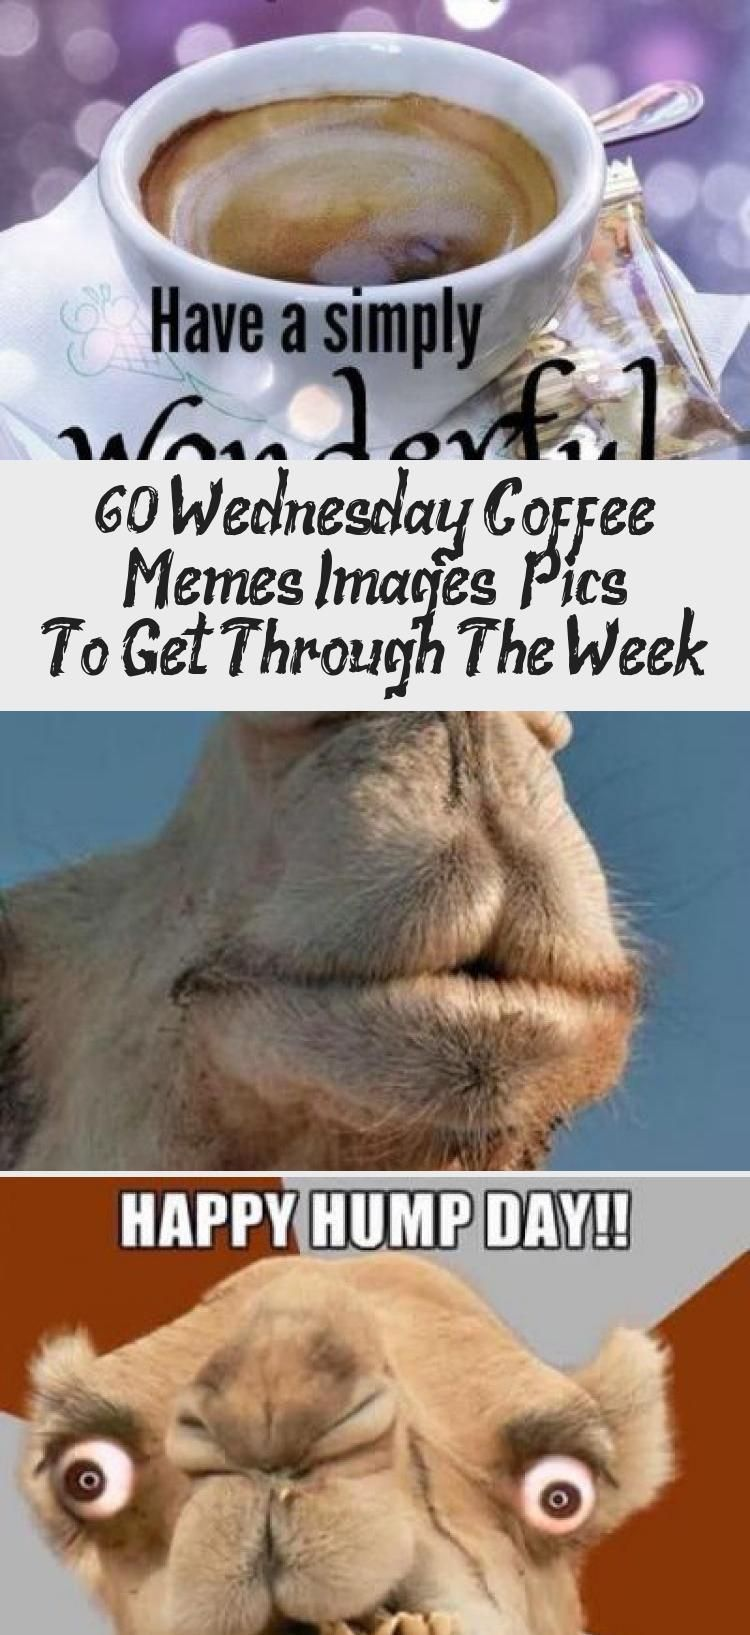 60 Wednesday Coffee Memes, Images amp; Pics To Get Through